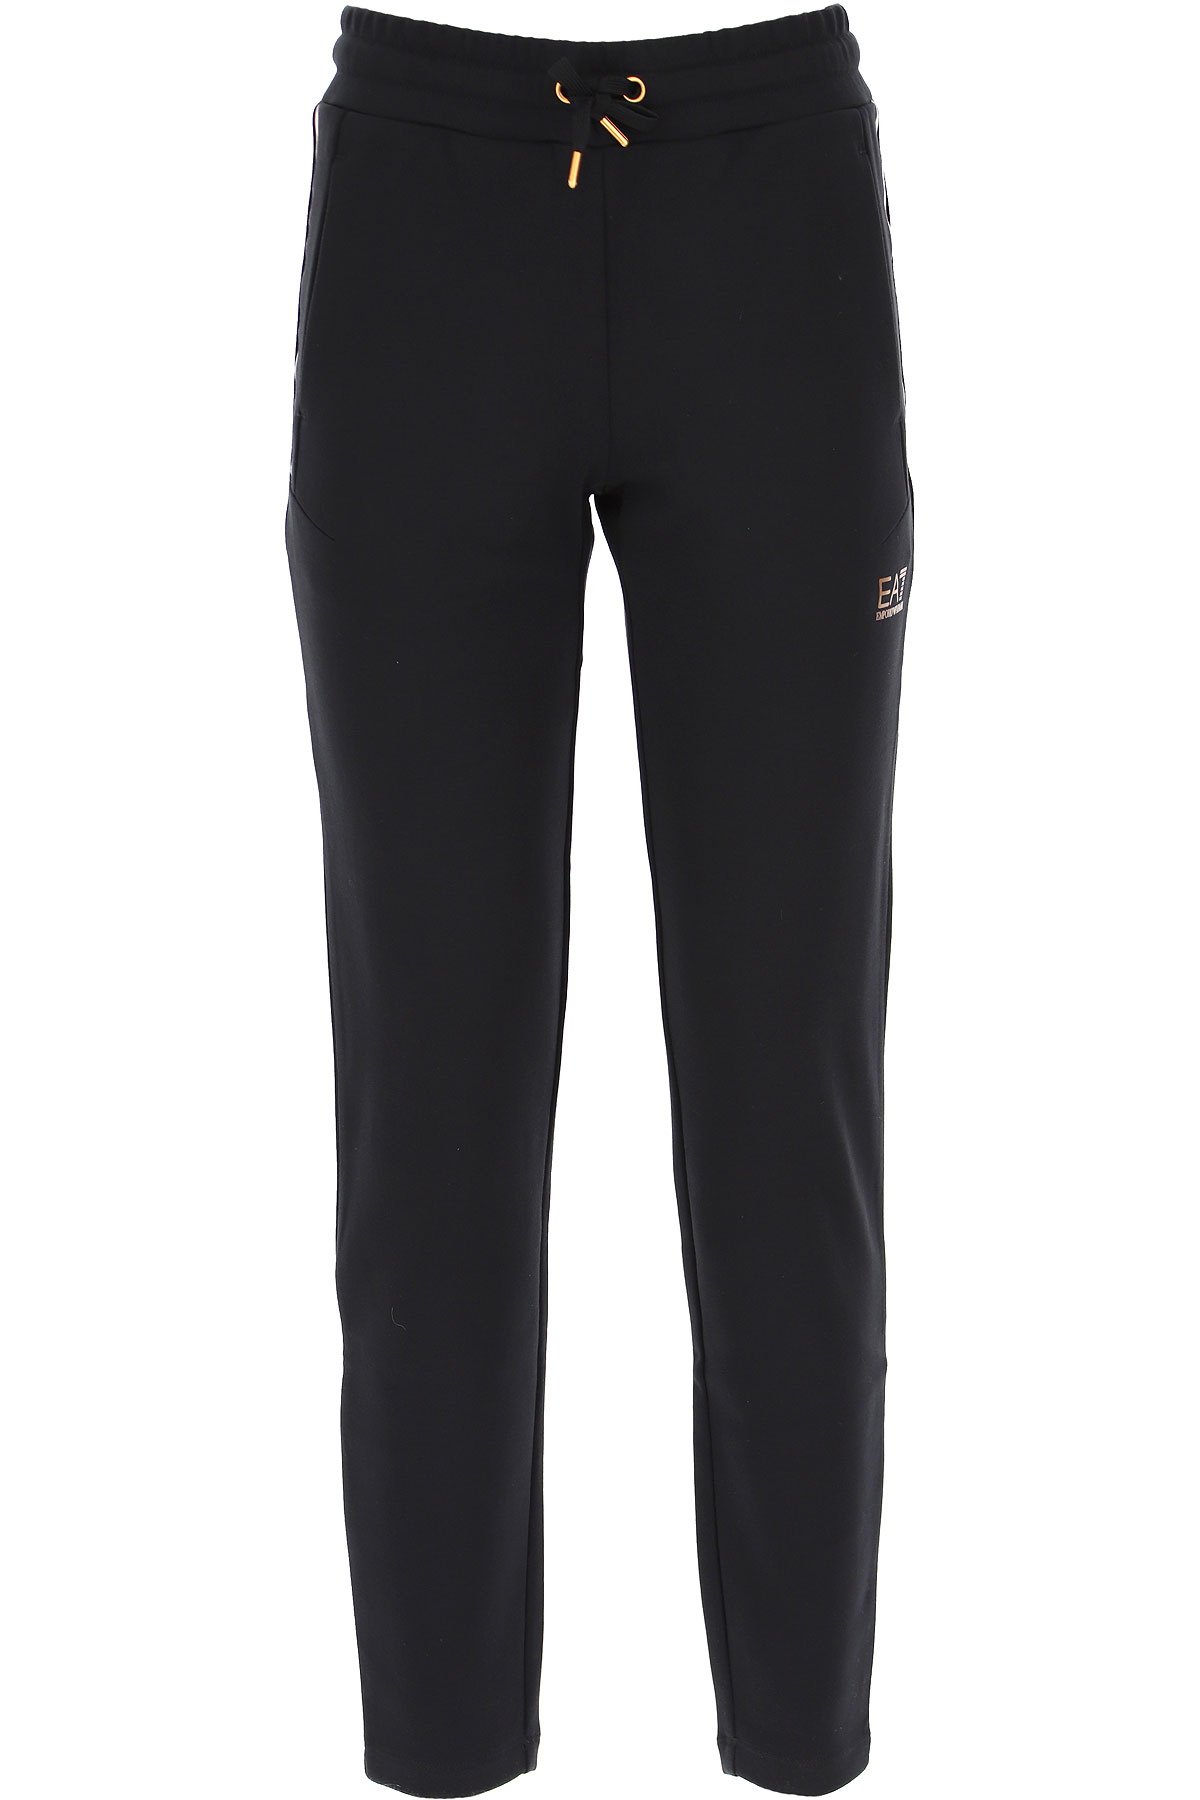 Emporio Armani Women's Sportswear for Gym Workouts and Running On Sale, Cotton, 2019, 10 4 6 8